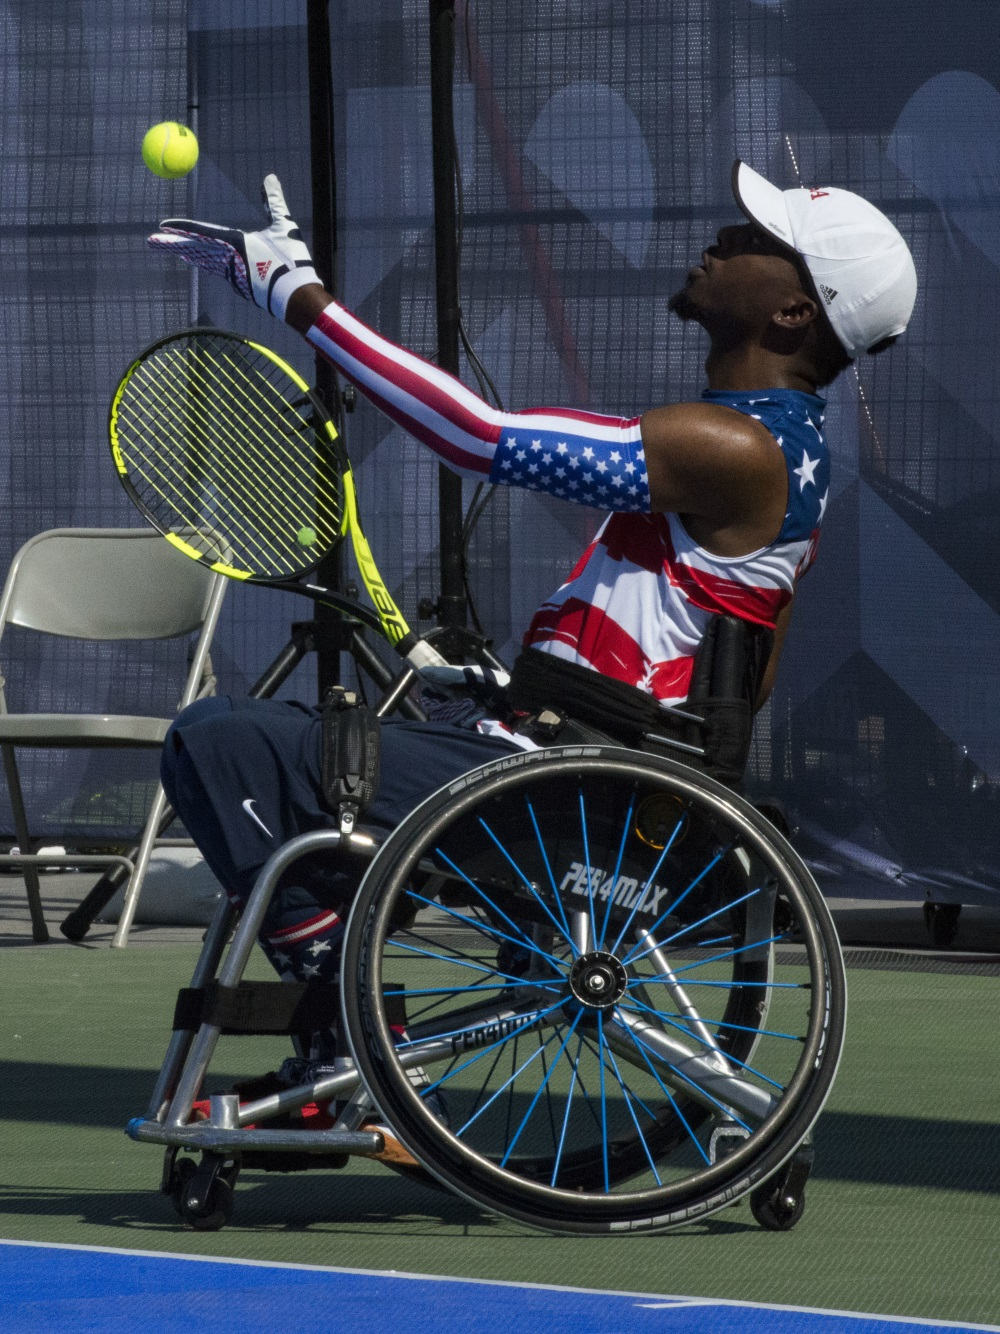 Army veteran Sgt. Roosevelt Anderson, of the U.S. Special Operations Command, competes in wheelchair tennis against Canada during the Invictus Games at Nathan Phillips Square in Toronto, Canada, on Sept. 23, 2017. (Sgt Cedric R. Haller II/DoD)